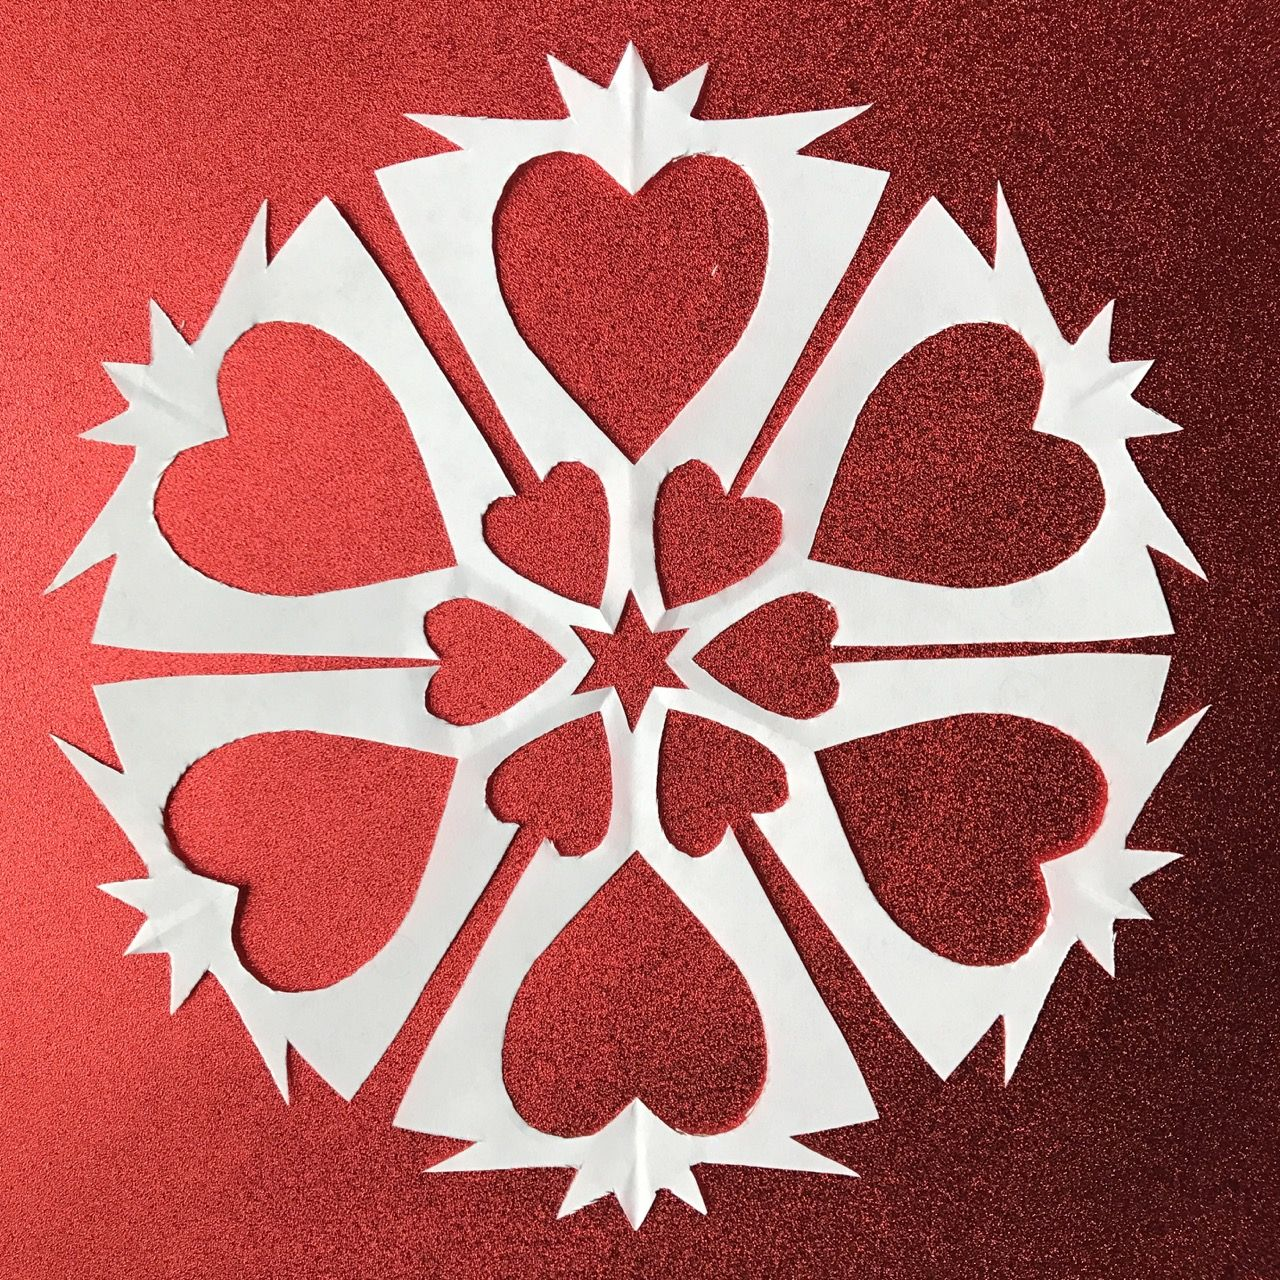 Queen Of Hearts Paper Snowflake Pattern Diy Printable Pattern To